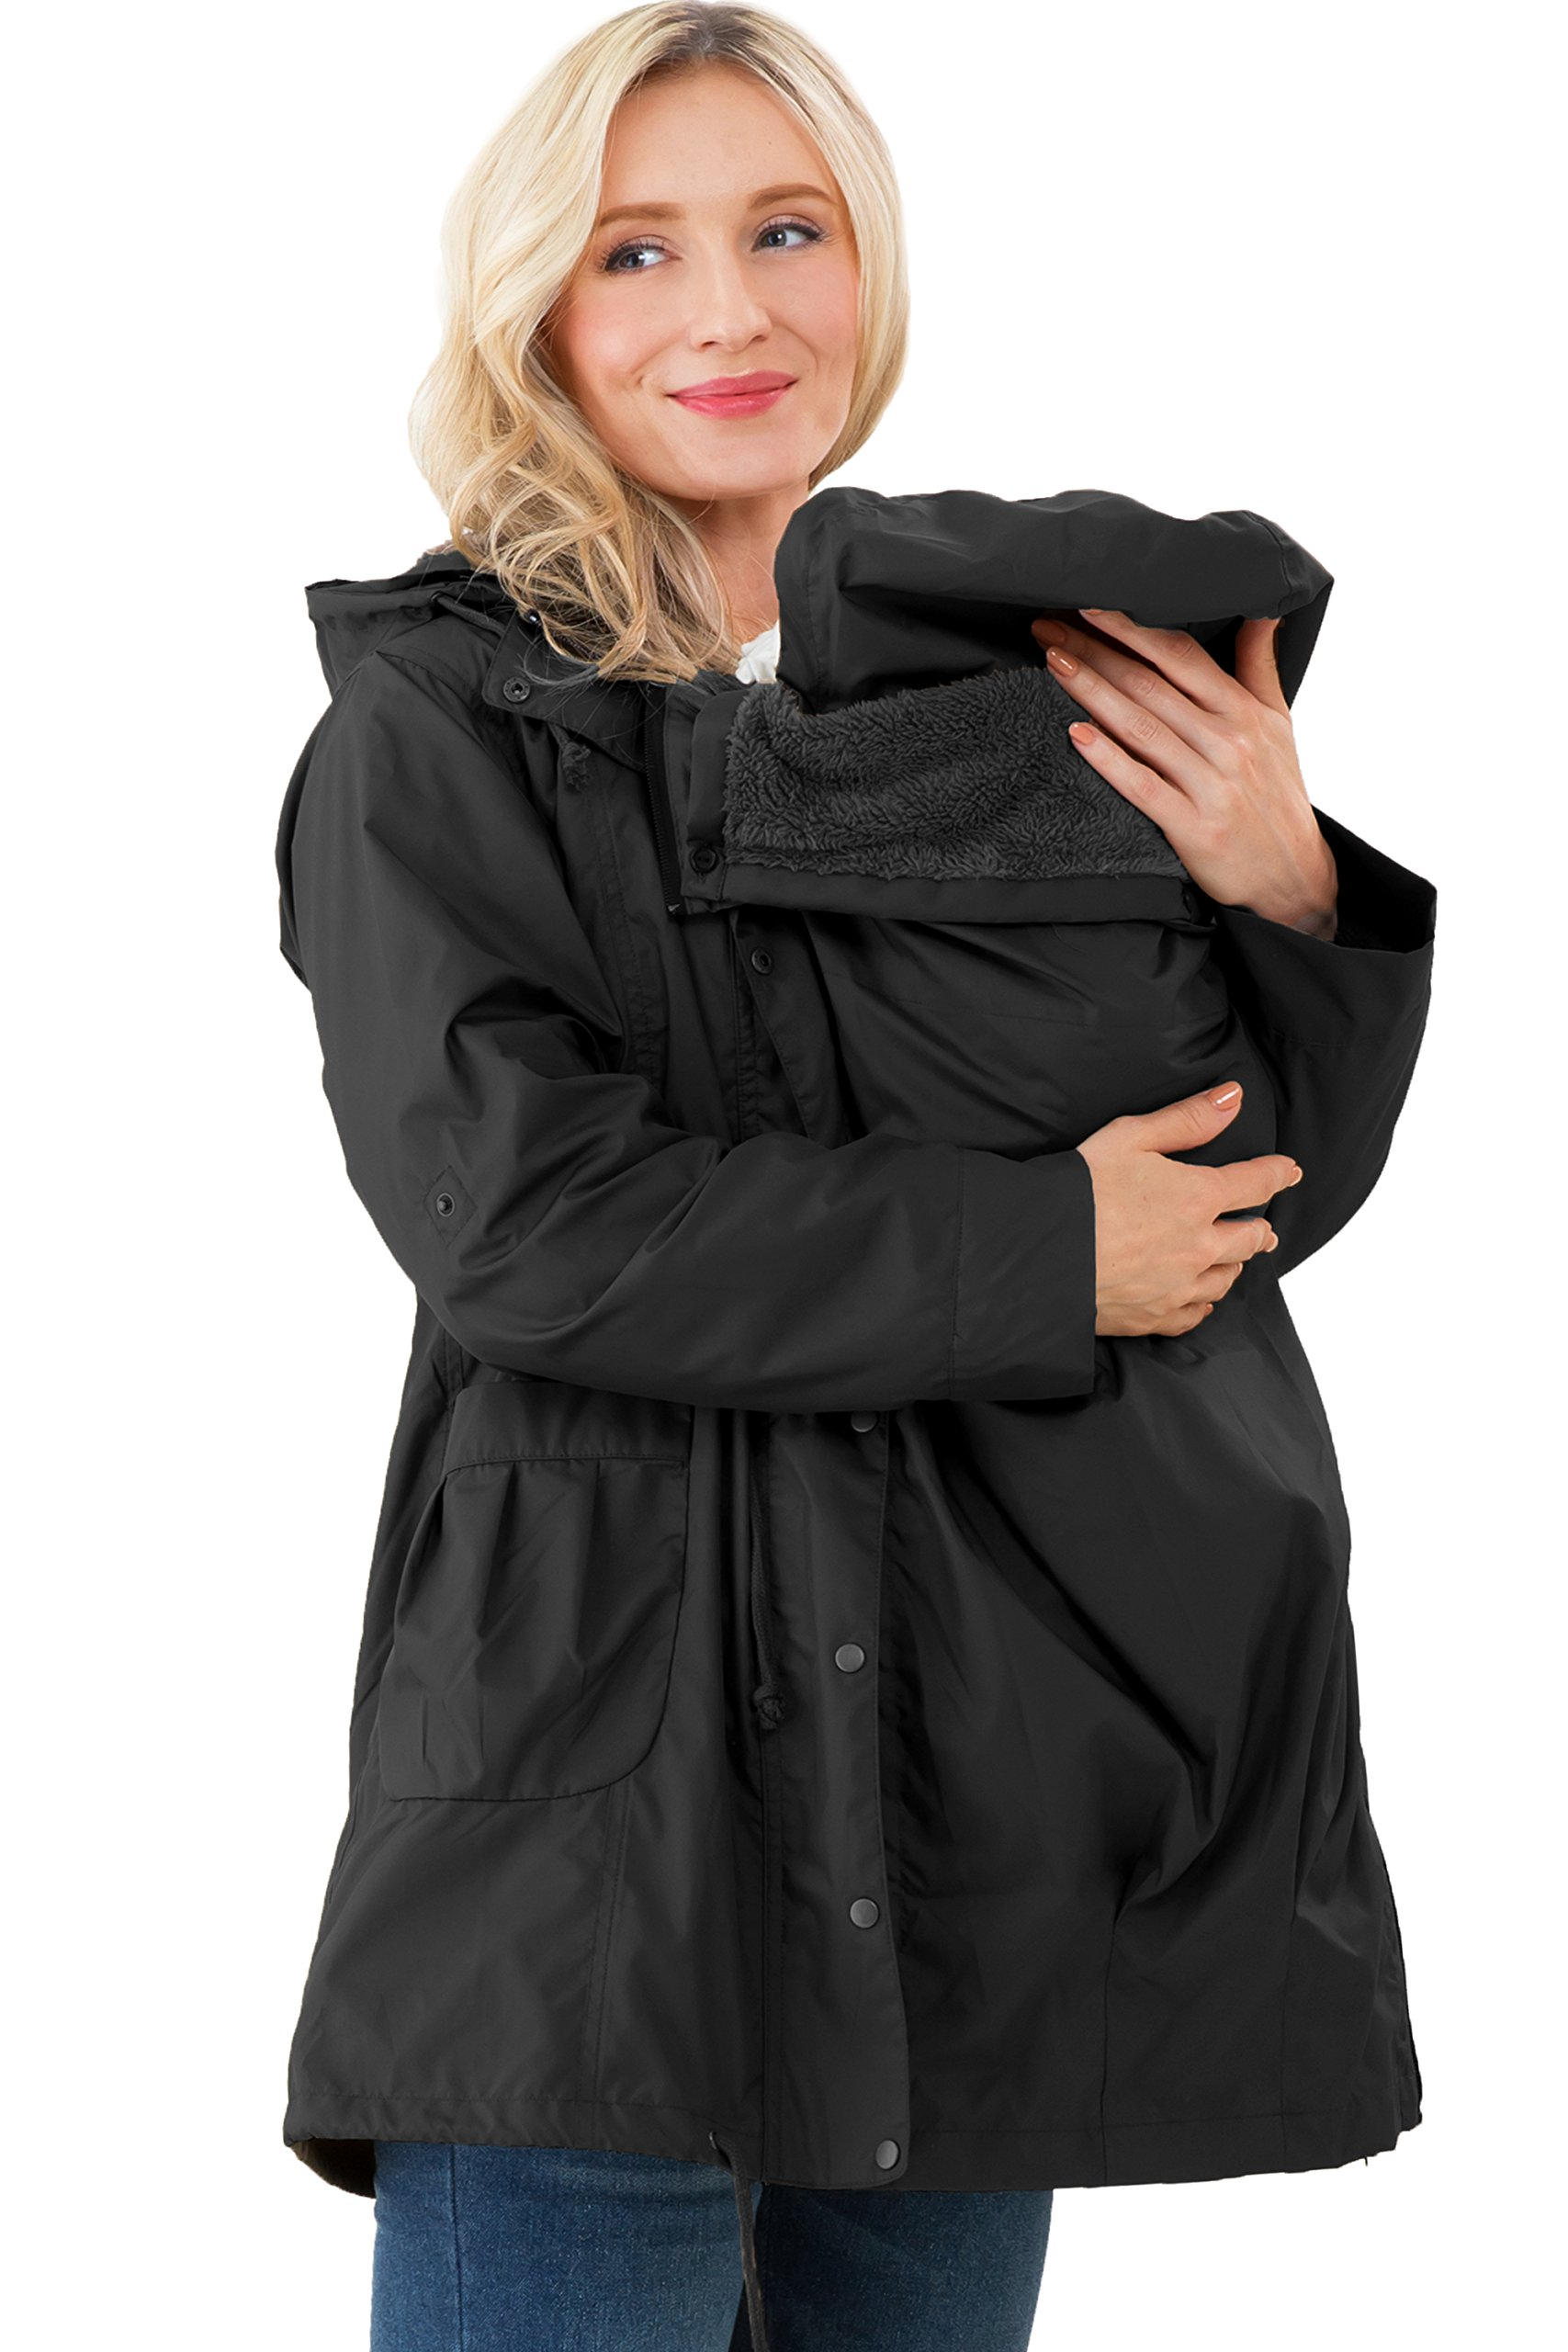 Sweet Mommy Multifunctional Mod's Style Mama Coat with a Baby Pouch Black, M by Sweet Mommy